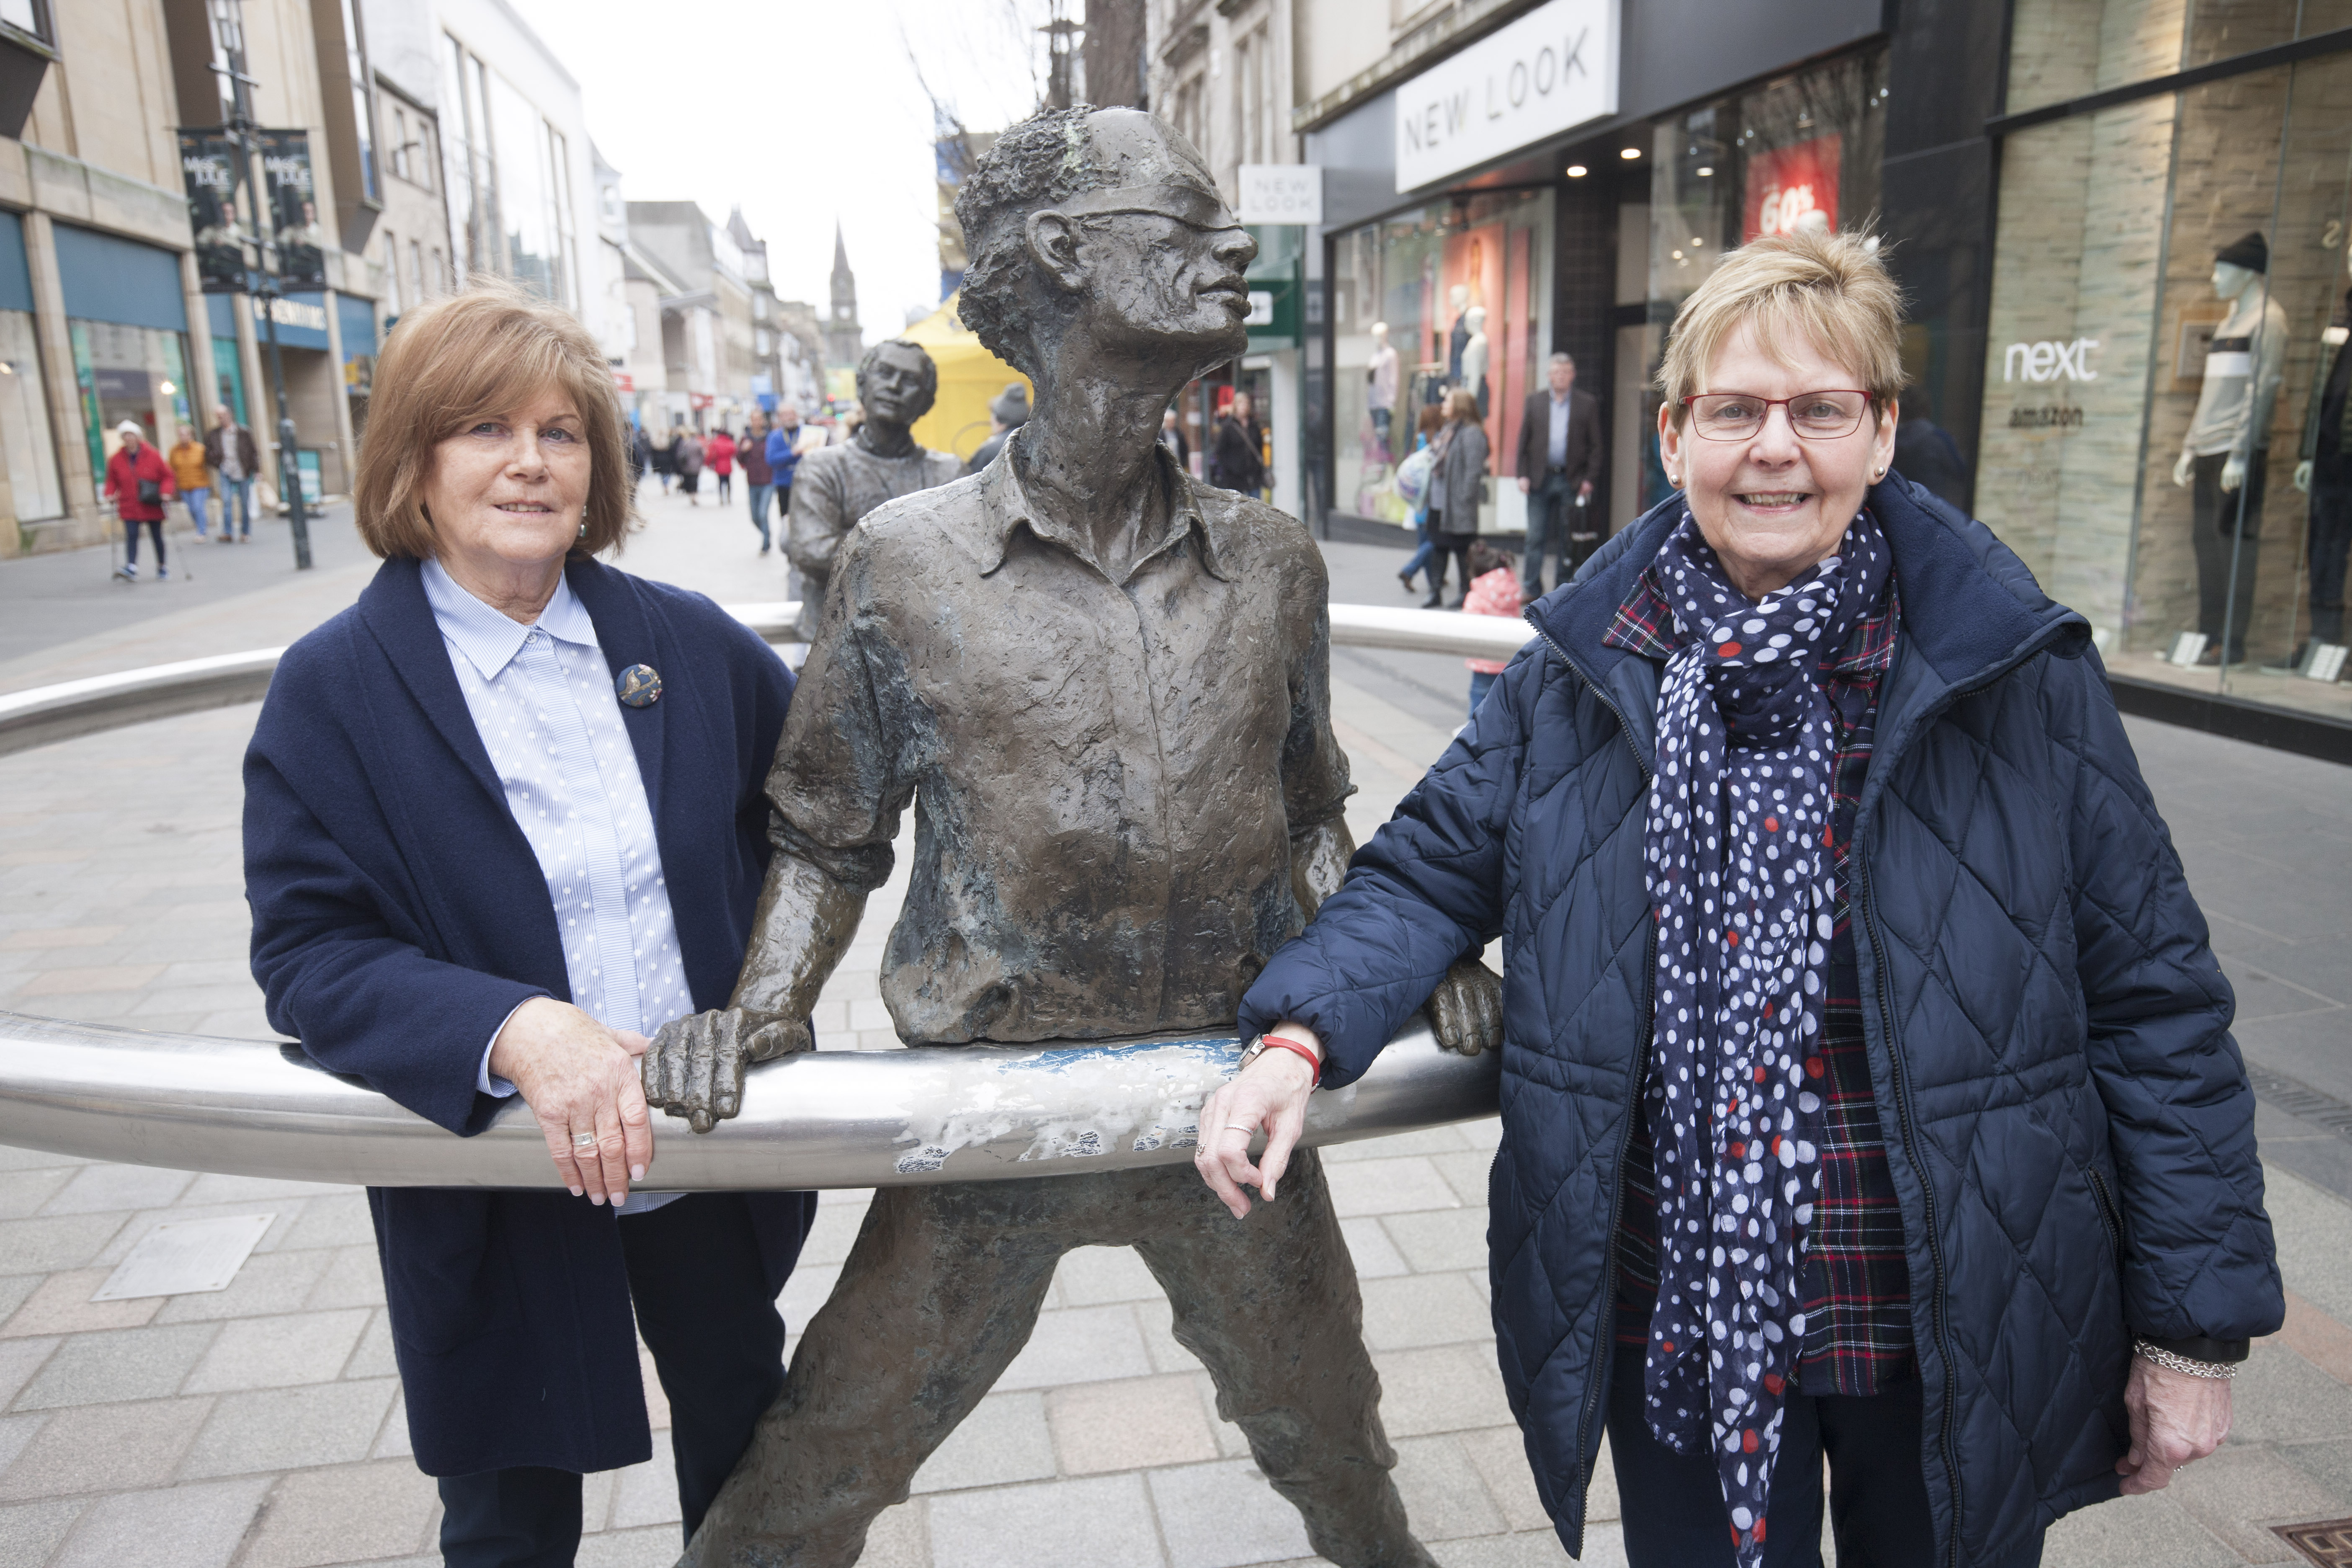 Perth City Centre Community Hub-organisers in Perth High Street. Wilma Coleman and Diane Walker